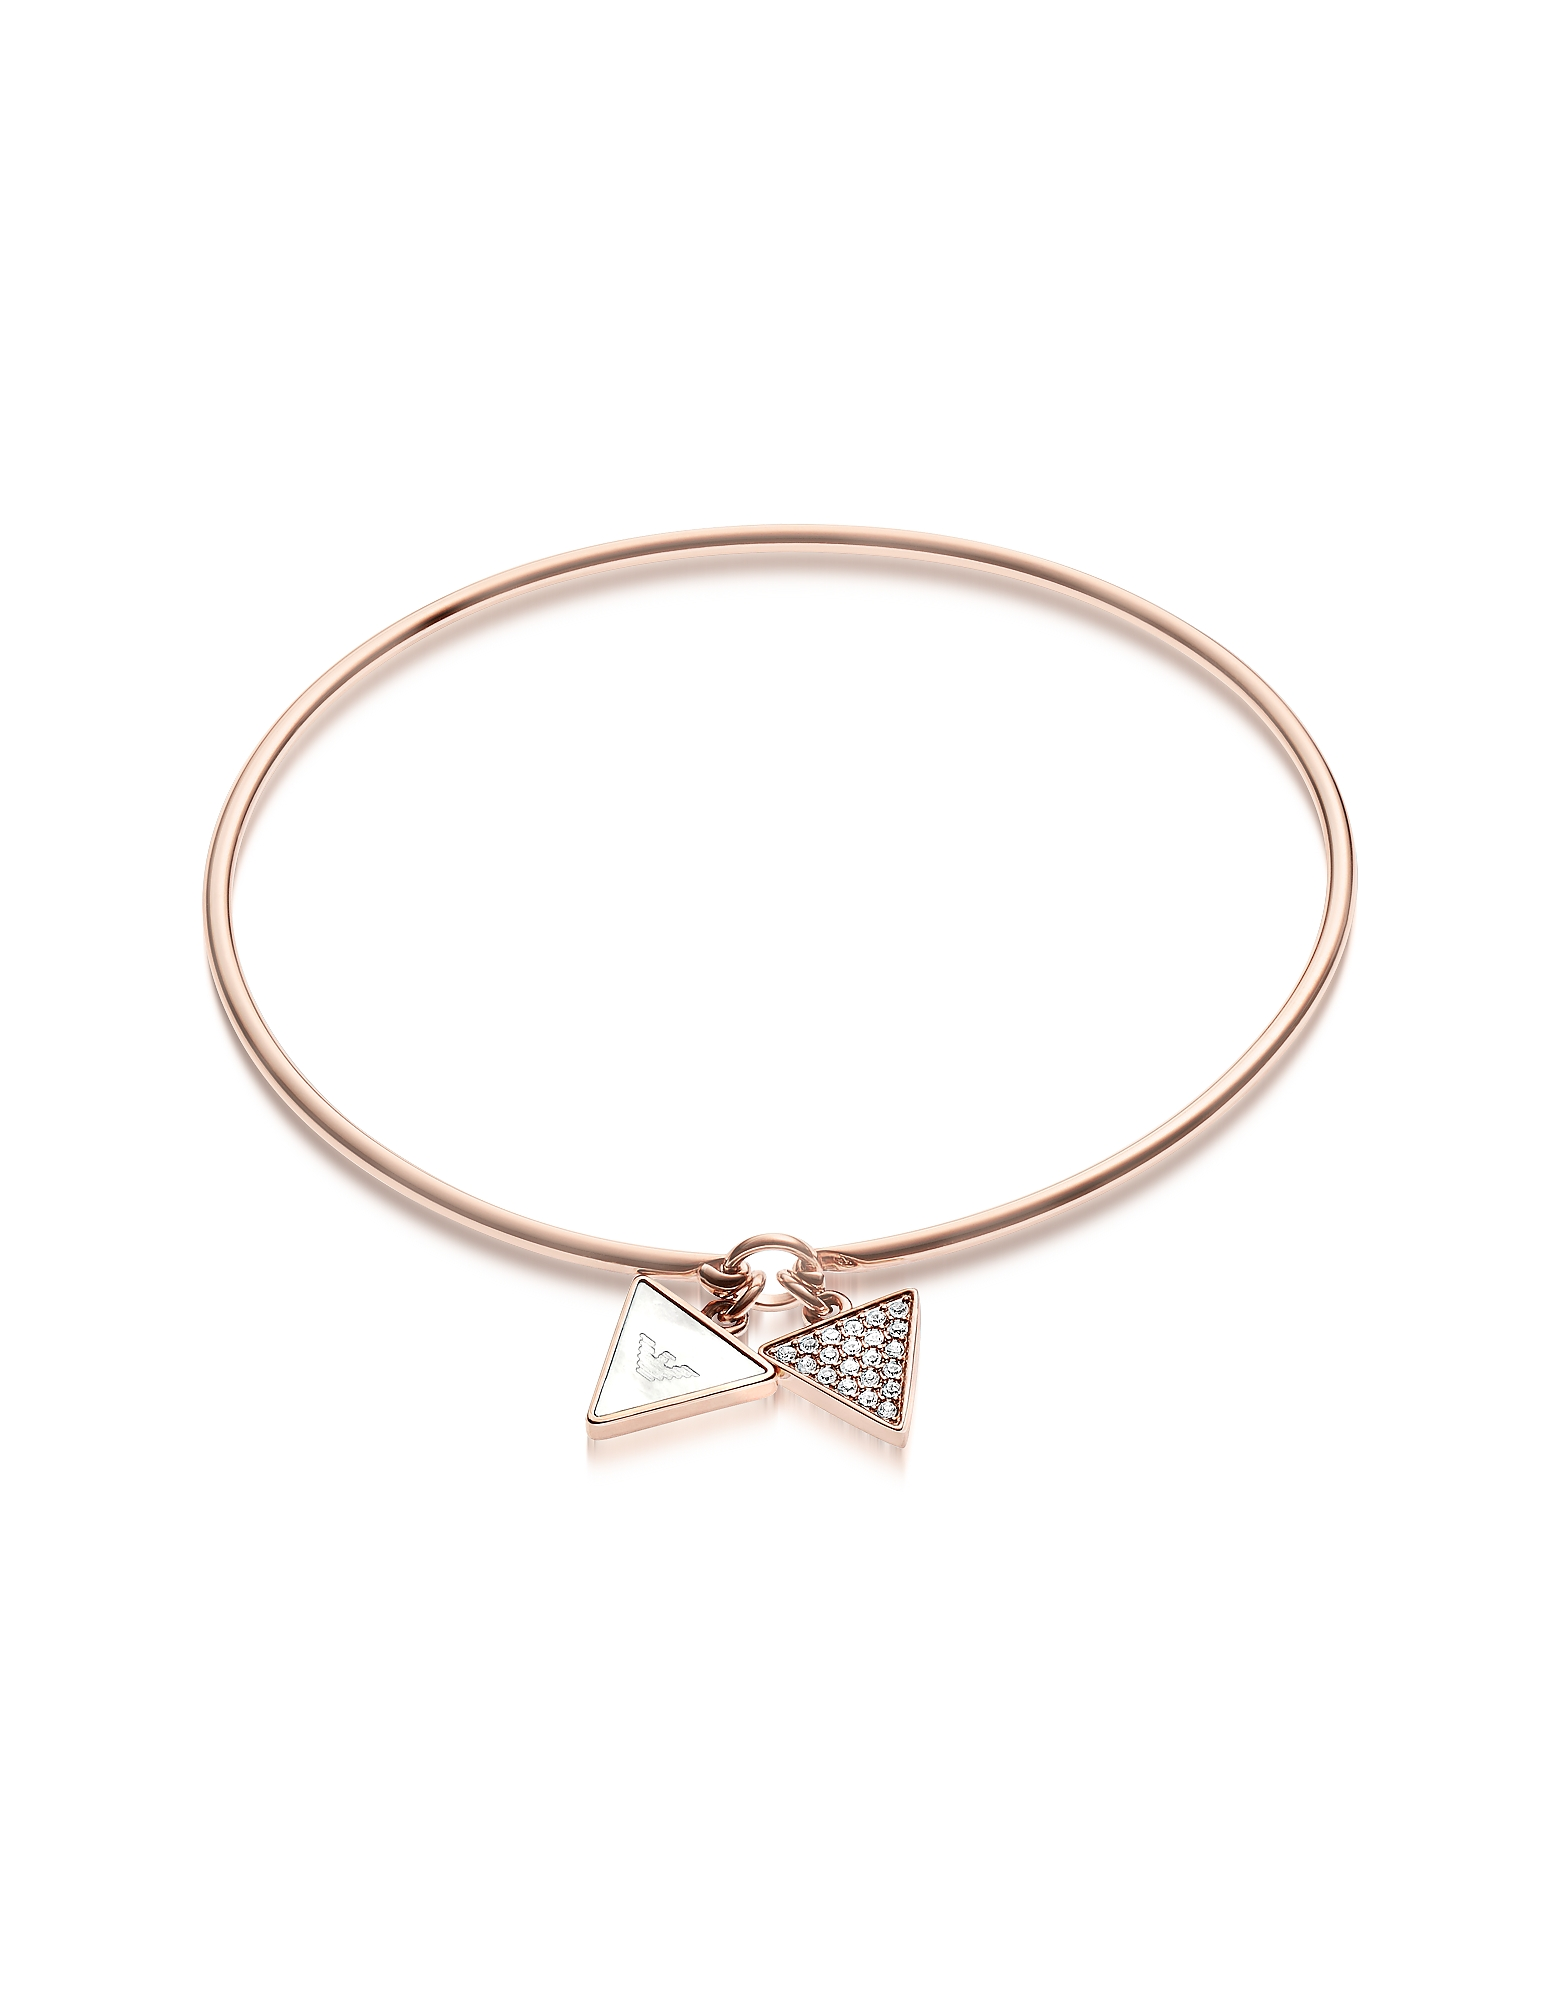 Emporio Armani Bracelets, Signature Rose Goldtone Bangle w/Double Charm